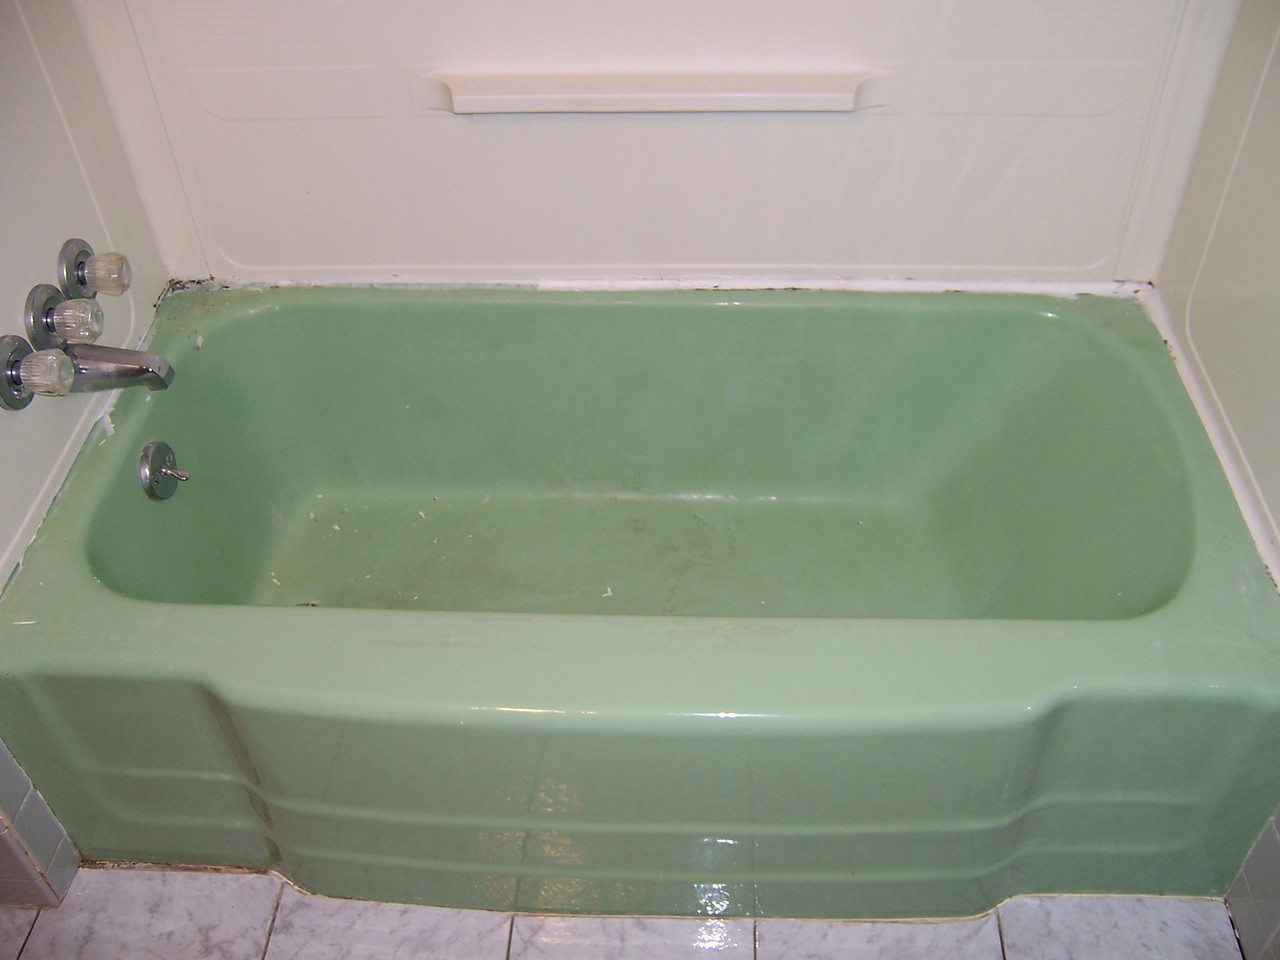 BEFORE - The customer wanted a nuetral color.  Notice the mold on the caulking. This was a health hazzard and made the tub and bathroom seem 'dirty'. In order to beat the mold circle, all the caulking and moisture must be completely removed and replaced. That includes the area under the bottom edge of the surround.